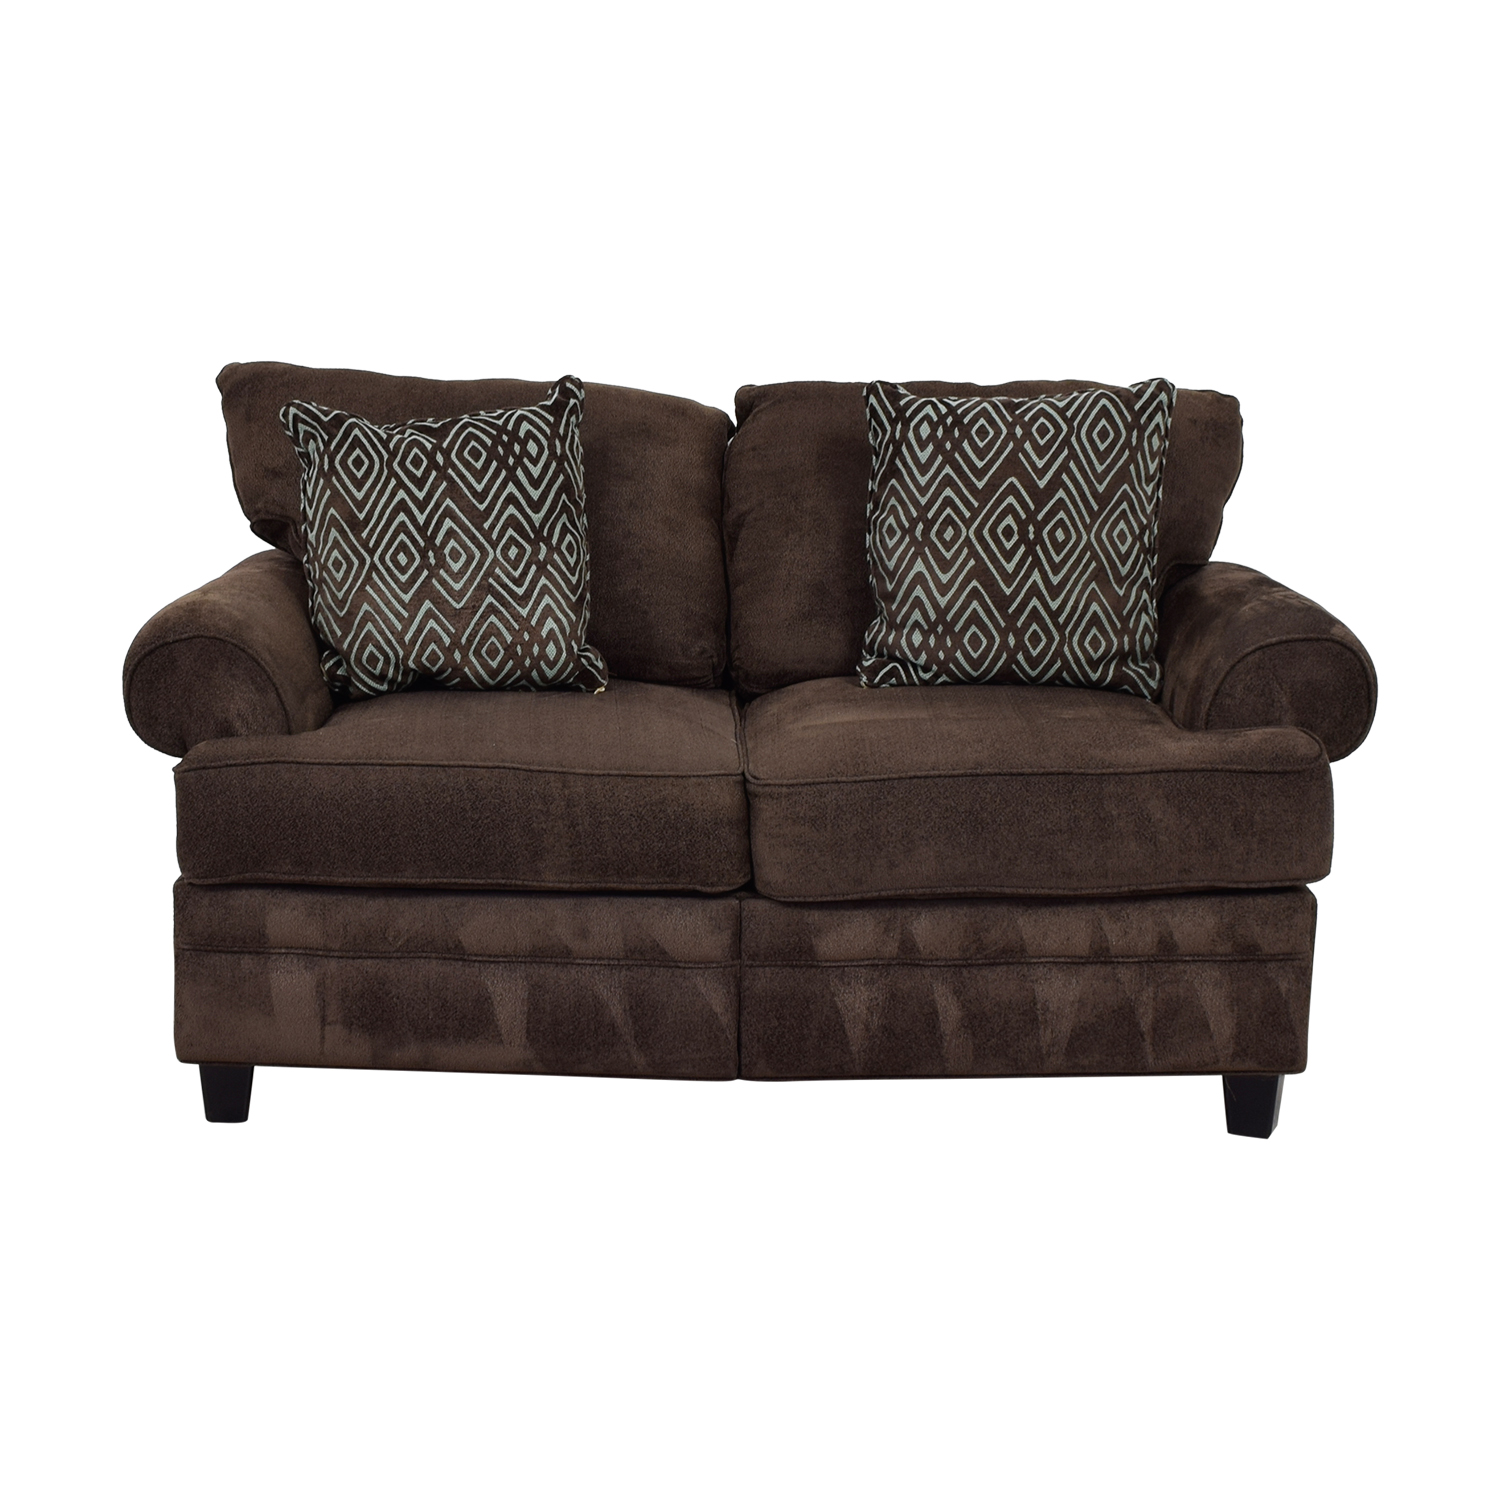 Bob's Furniture Bob's Furniture Brown Two-Cushion Love Seat second hand